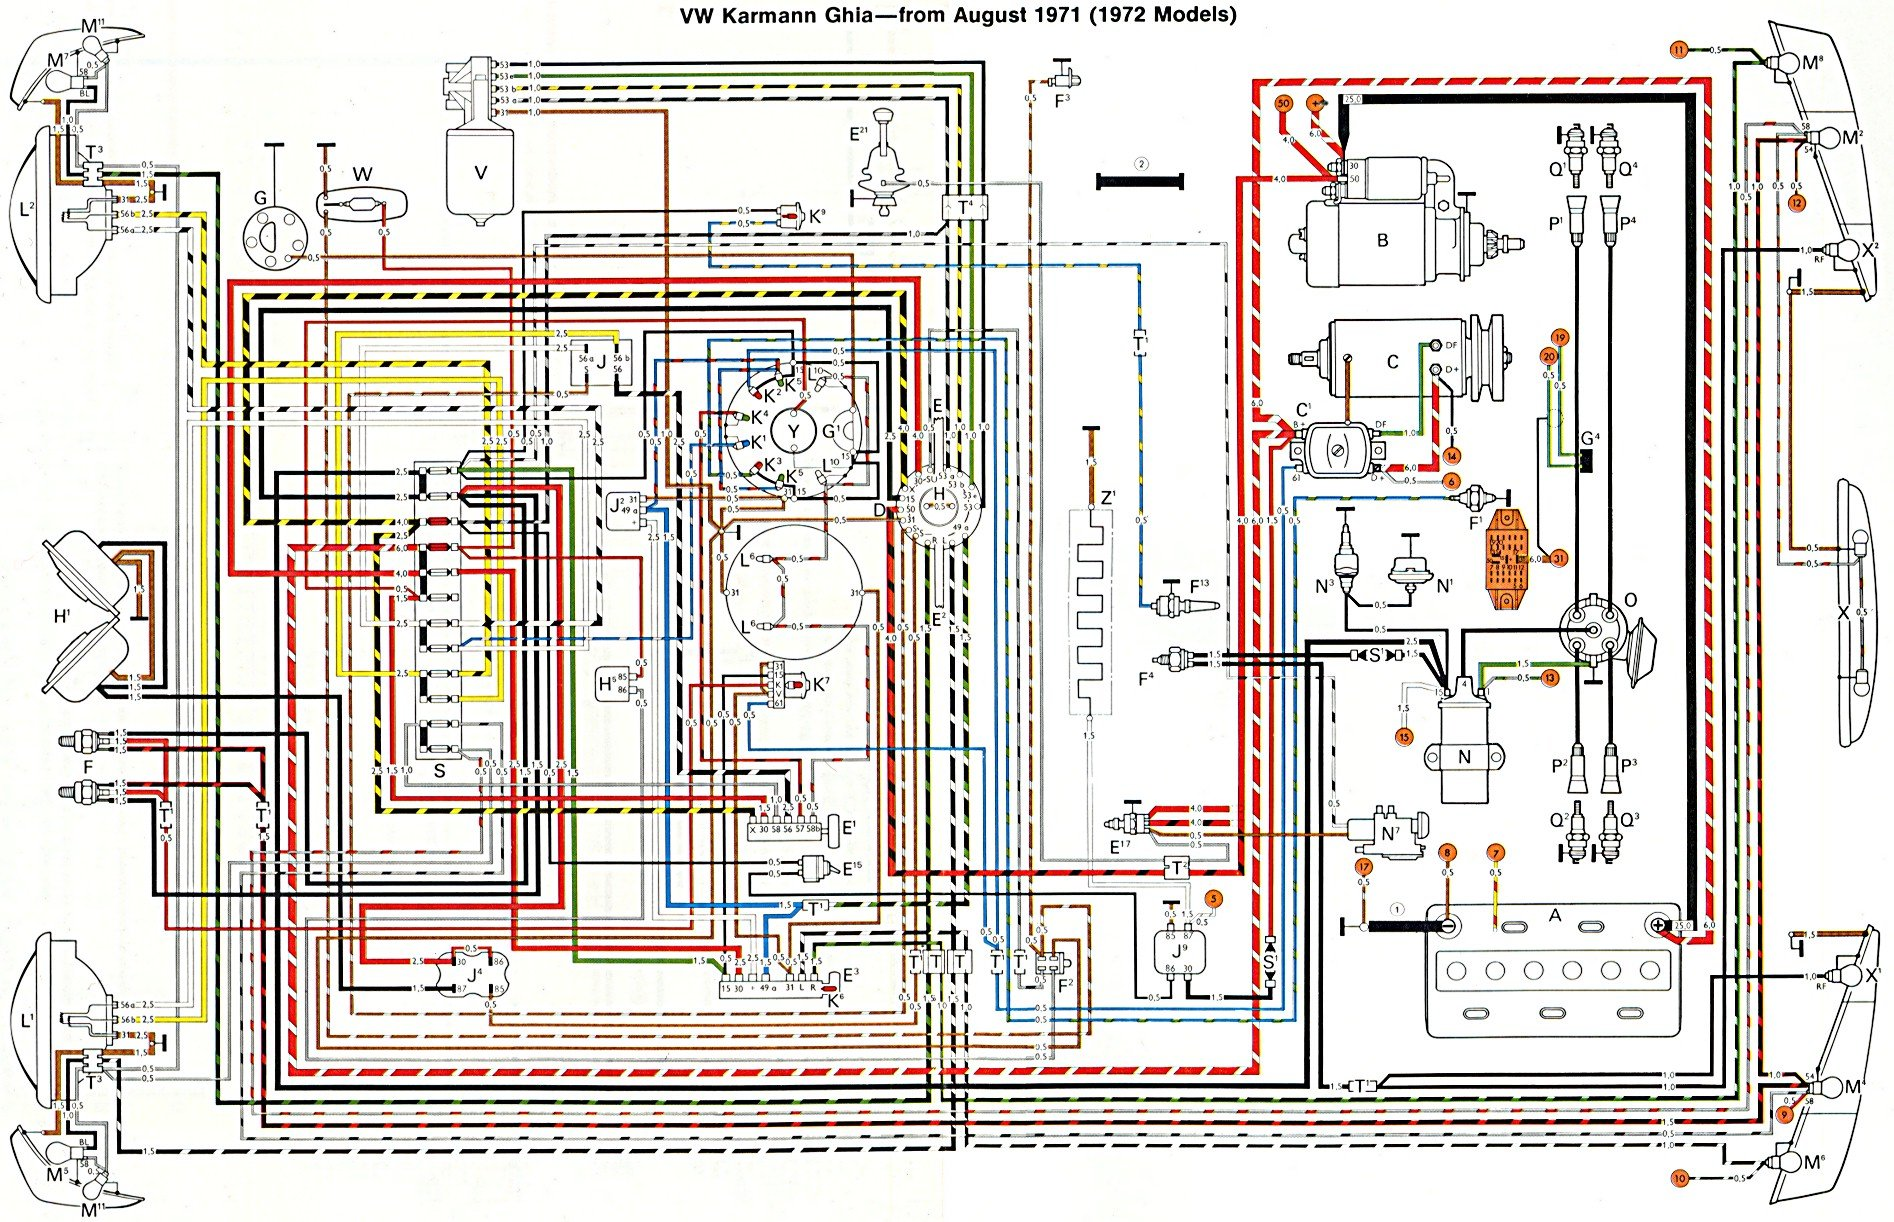 72ghia 1971 karmann ghia wiring diagram karmann ghia wiring harness 1965 vw beetle wiring diagram at edmiracle.co